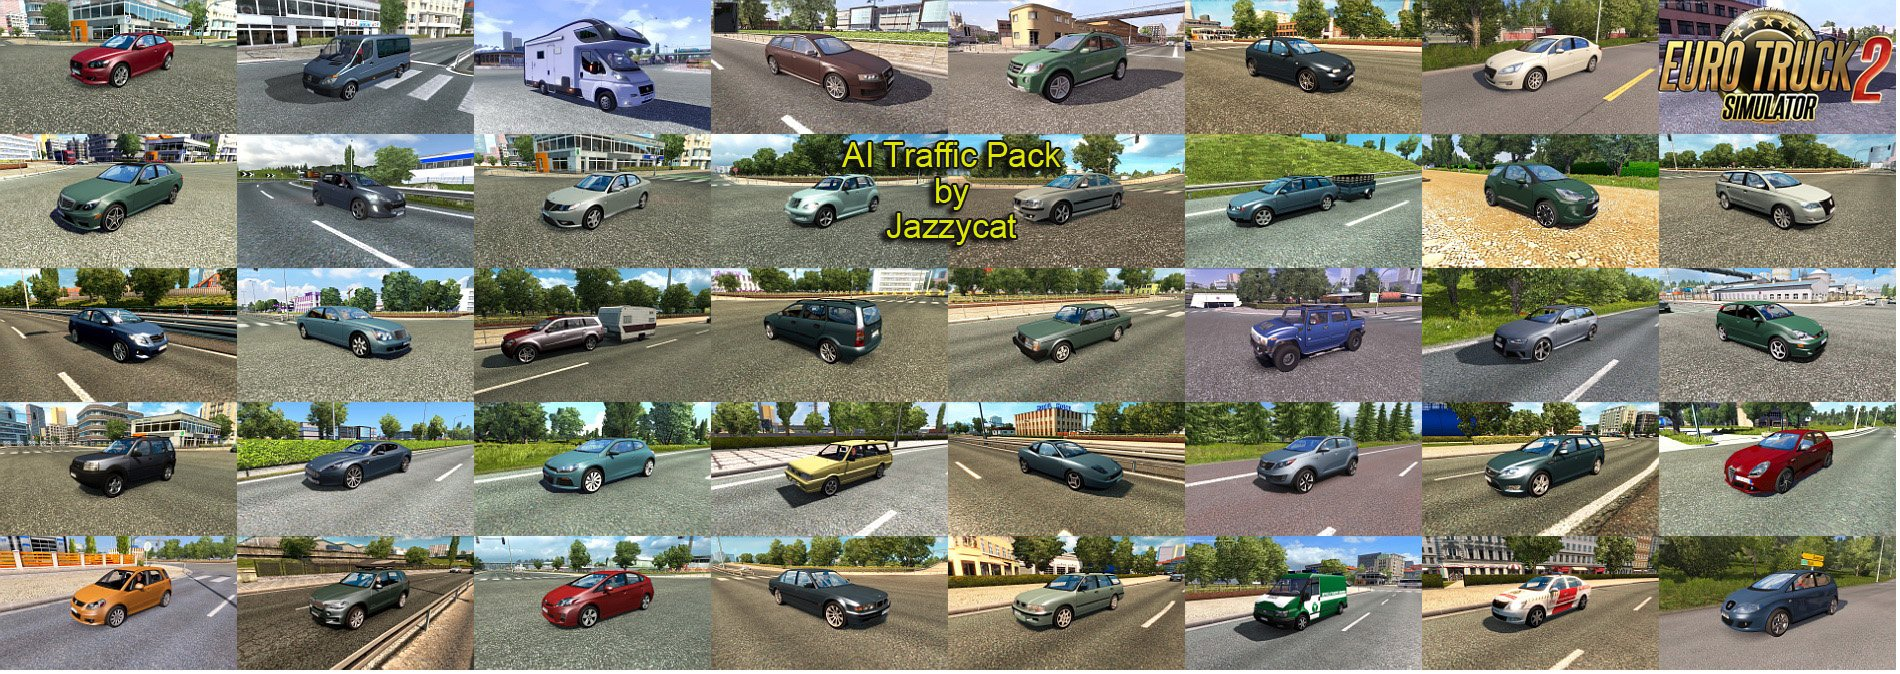 AI Traffic Pack v4.6.1 by Jazzycat [1.27.x]